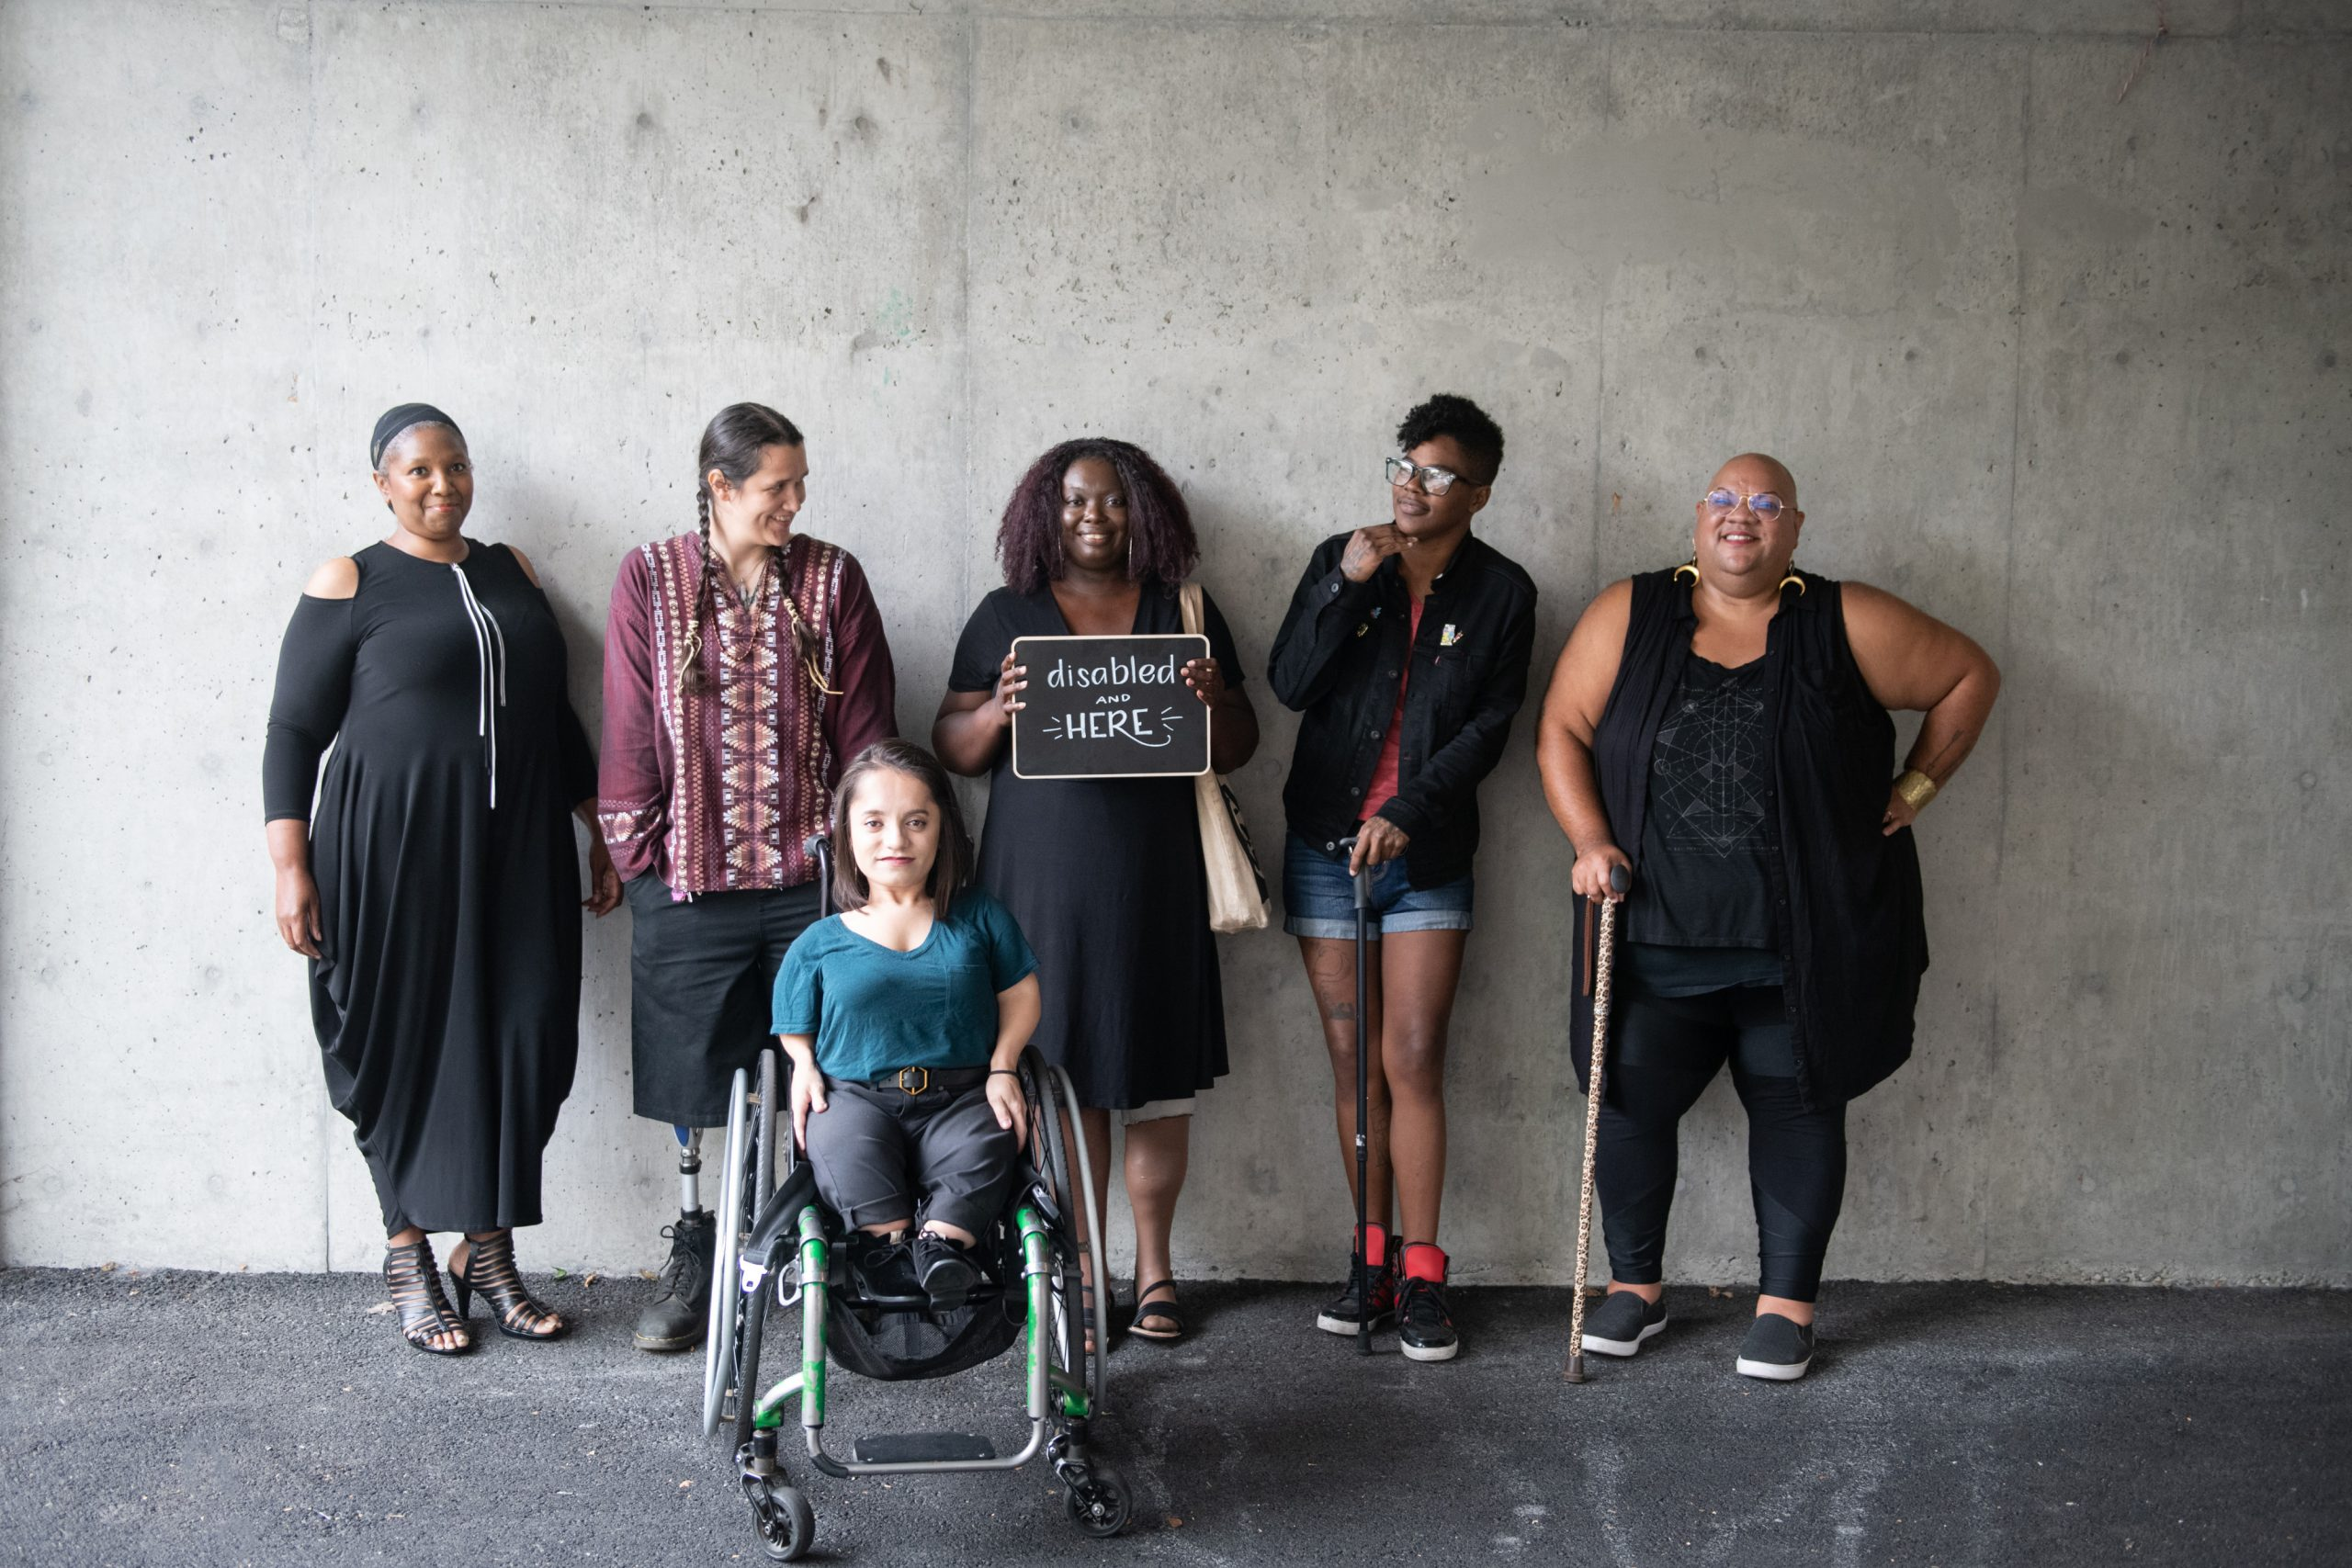 Line up of six disabled people showing disability pride